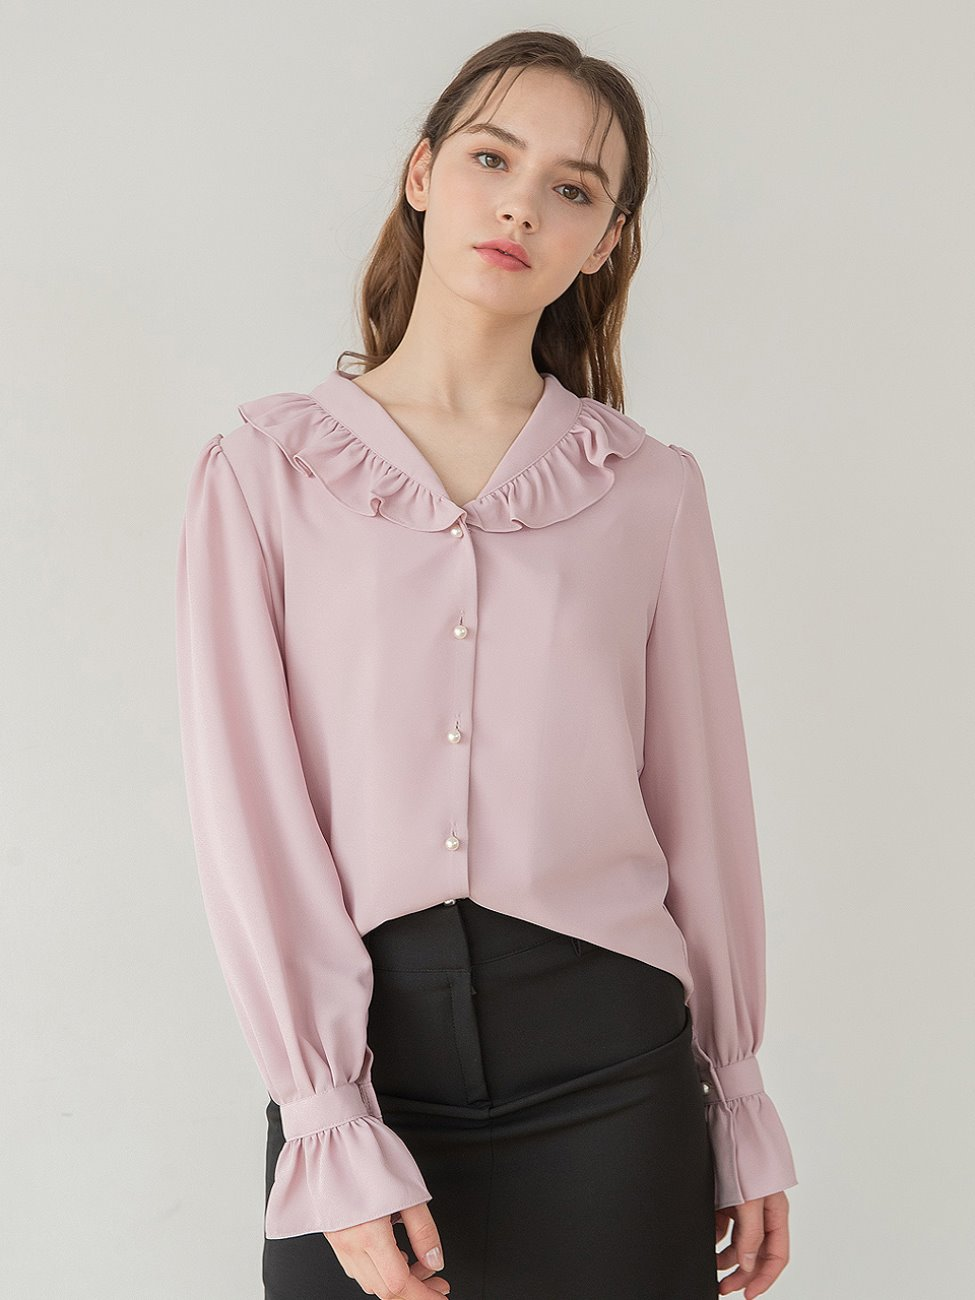 Shawl Collar V Neck Blouse Pink